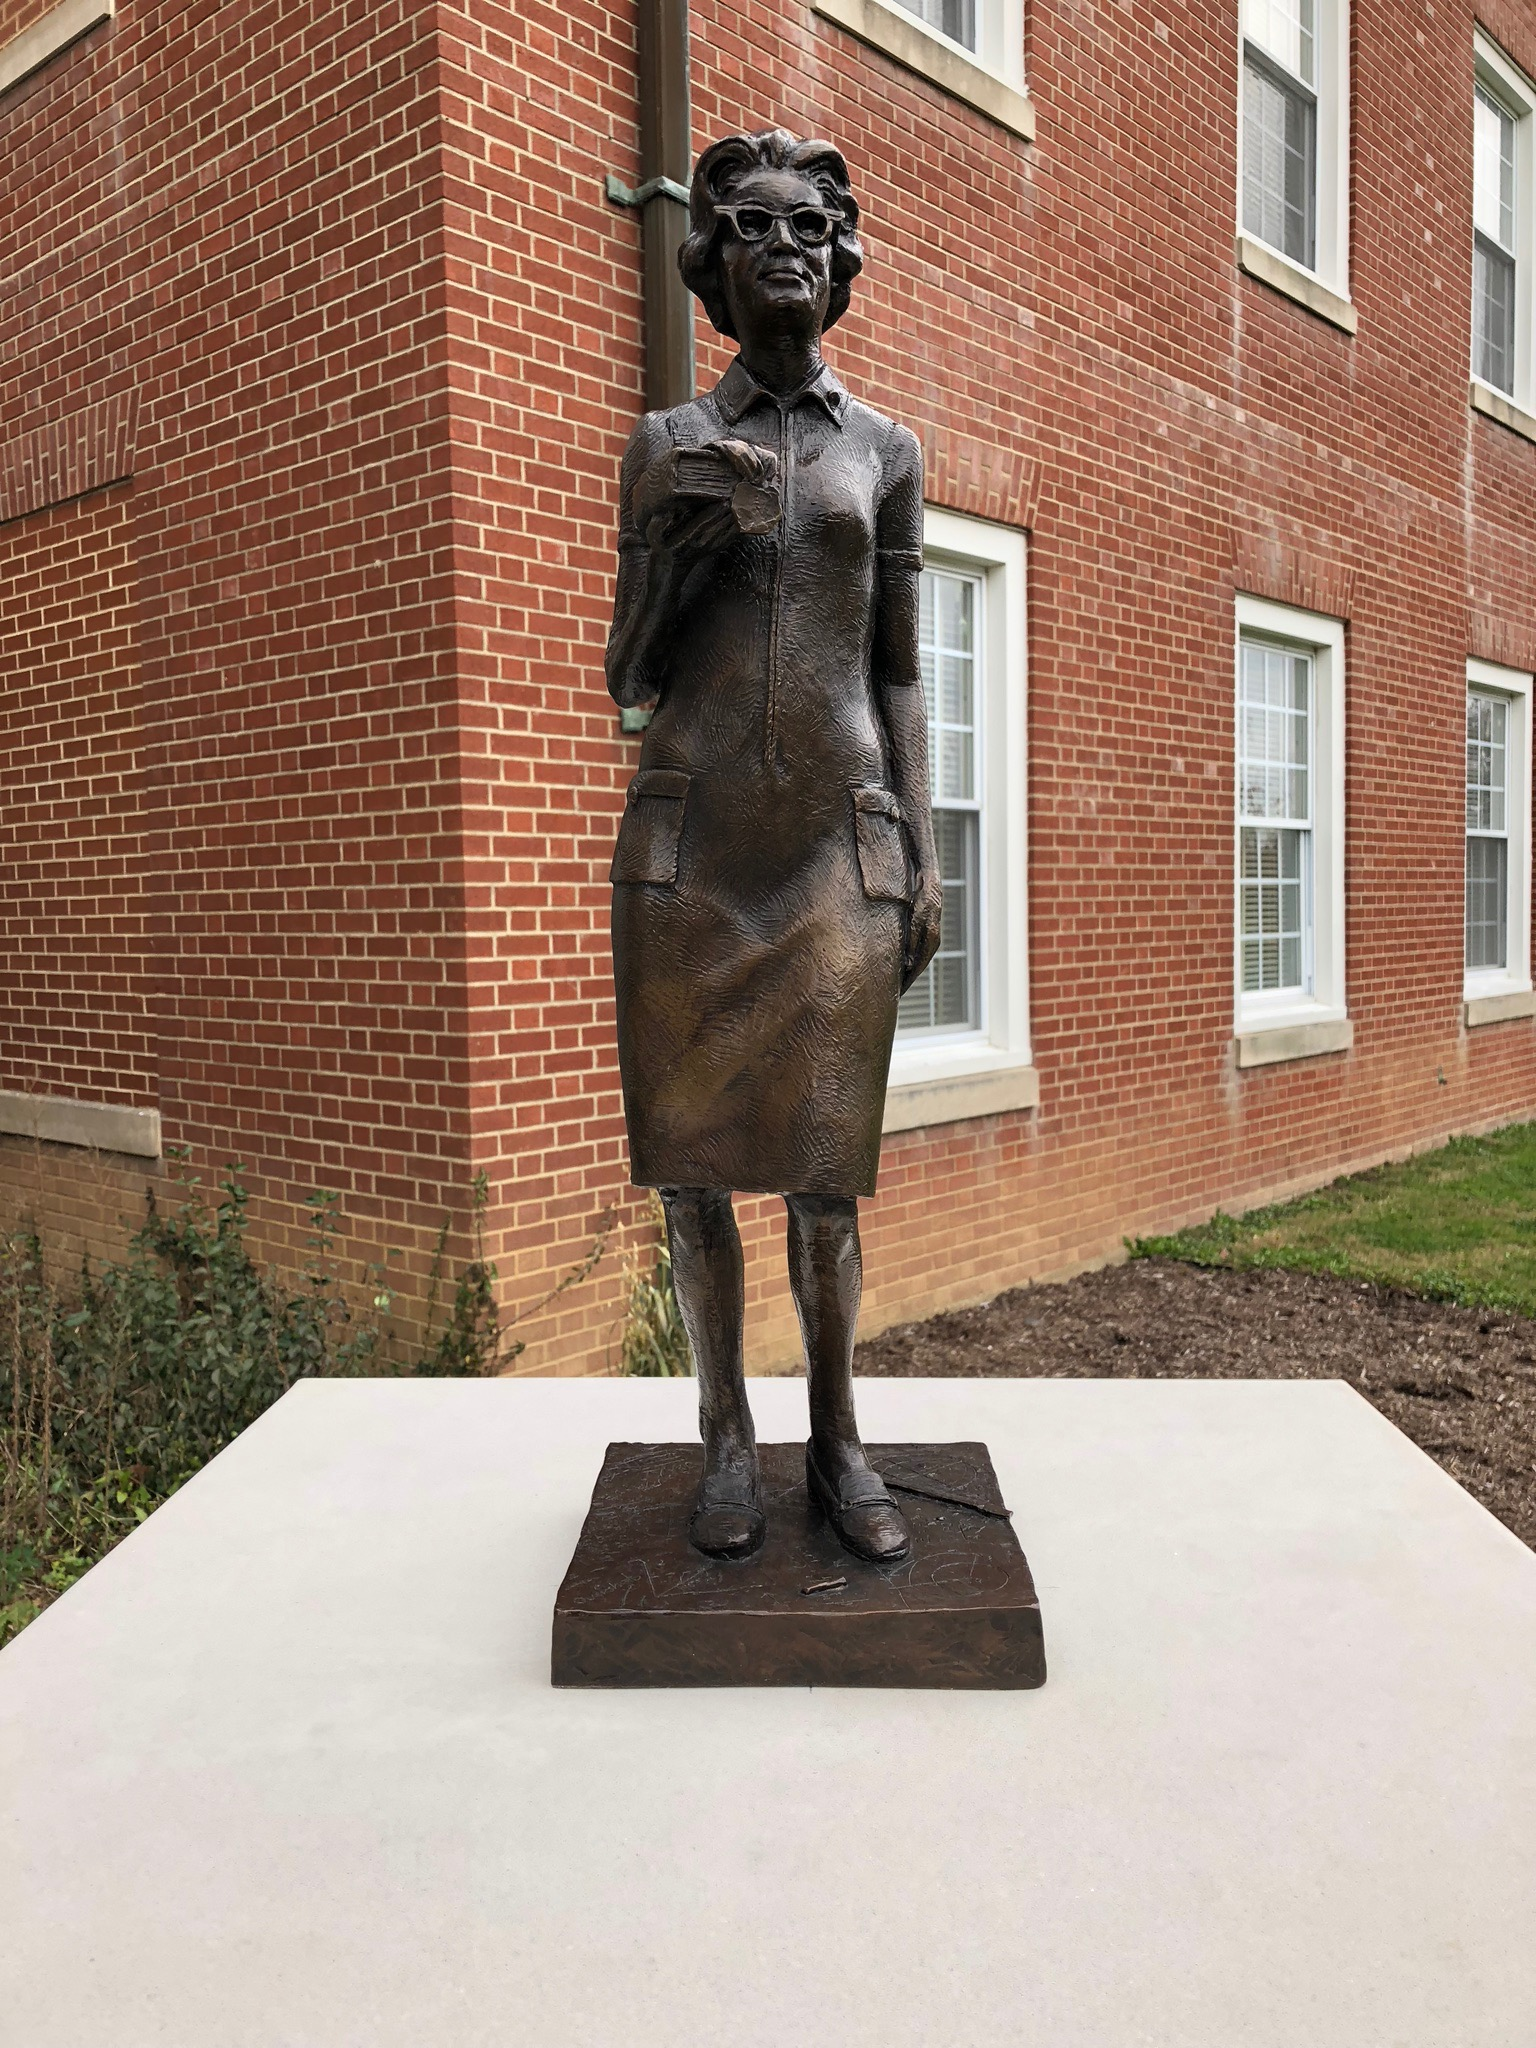 Katherine G. Johnson was the recipient of the Presidential Medal of Freedom and a statue of her will be dedicated on the campus thanks to the support of donors.